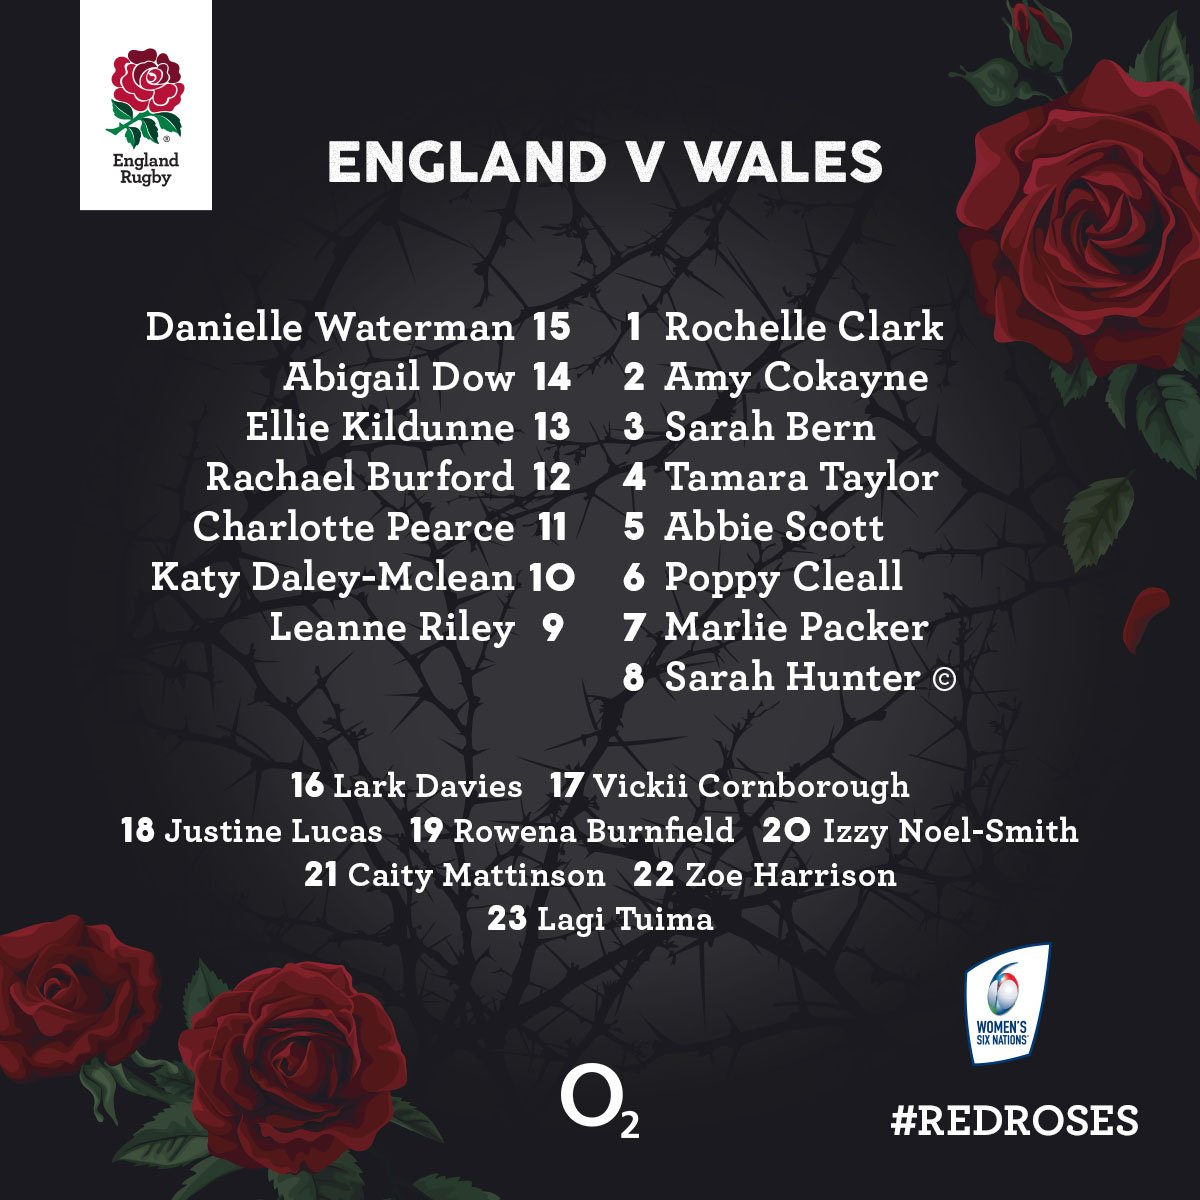 6 NATIONS 2018 - England v Wales build up/Match/Autopsy Thread - 12-6 - Page 4 DVf-yVeWAAAyACu